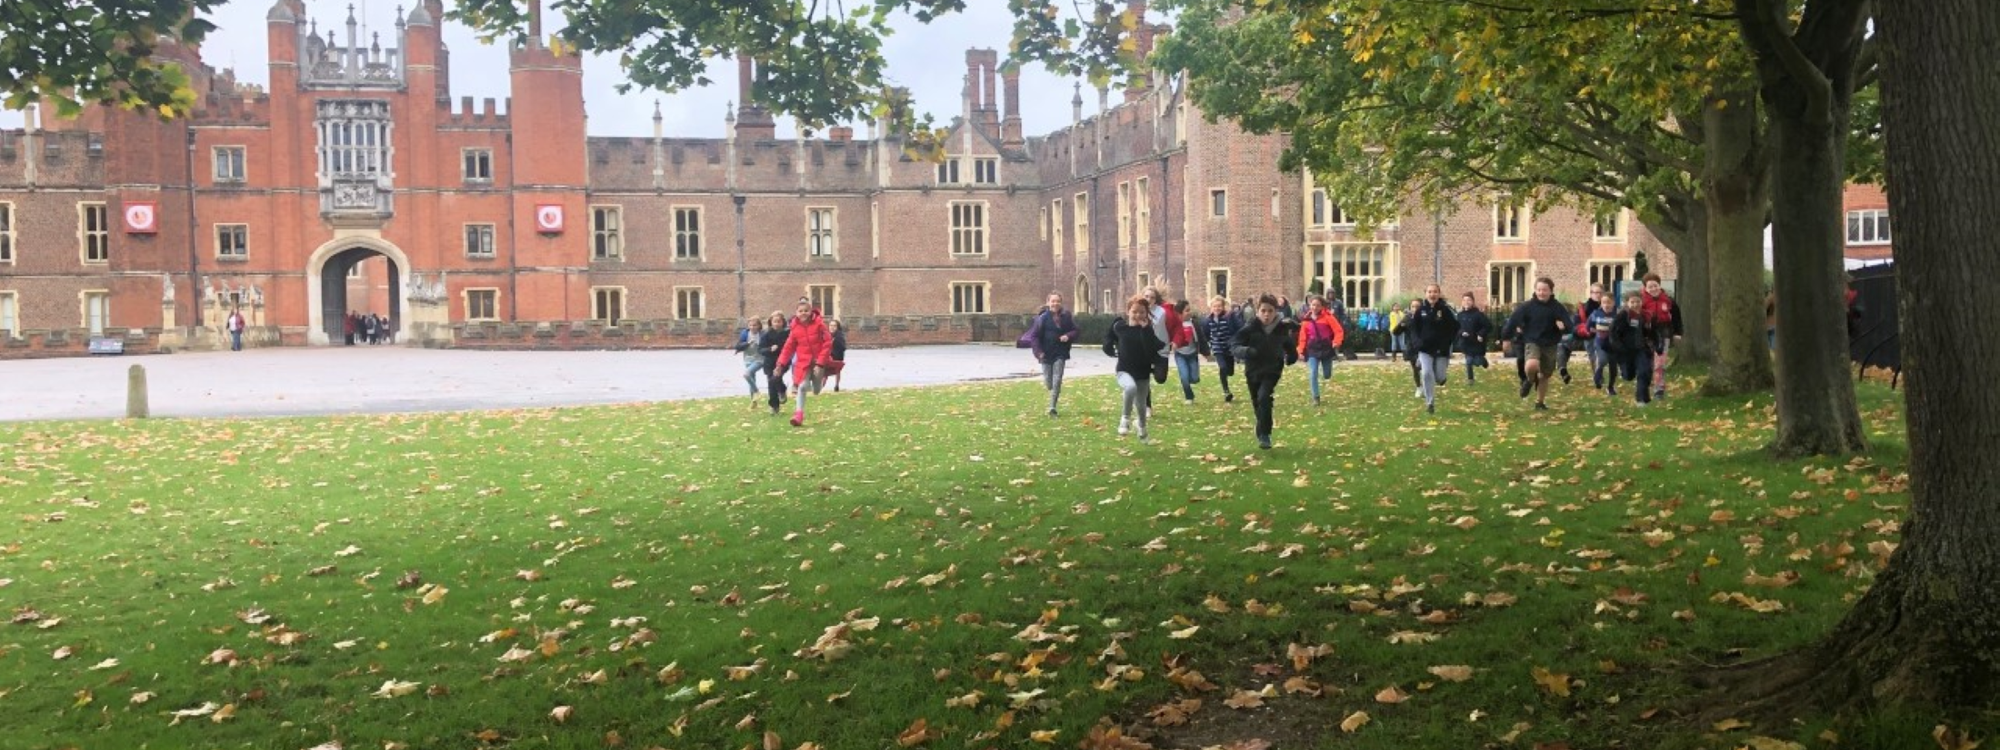 Hampton Court playtime 1 Header photo for Mission, vison, core values resized